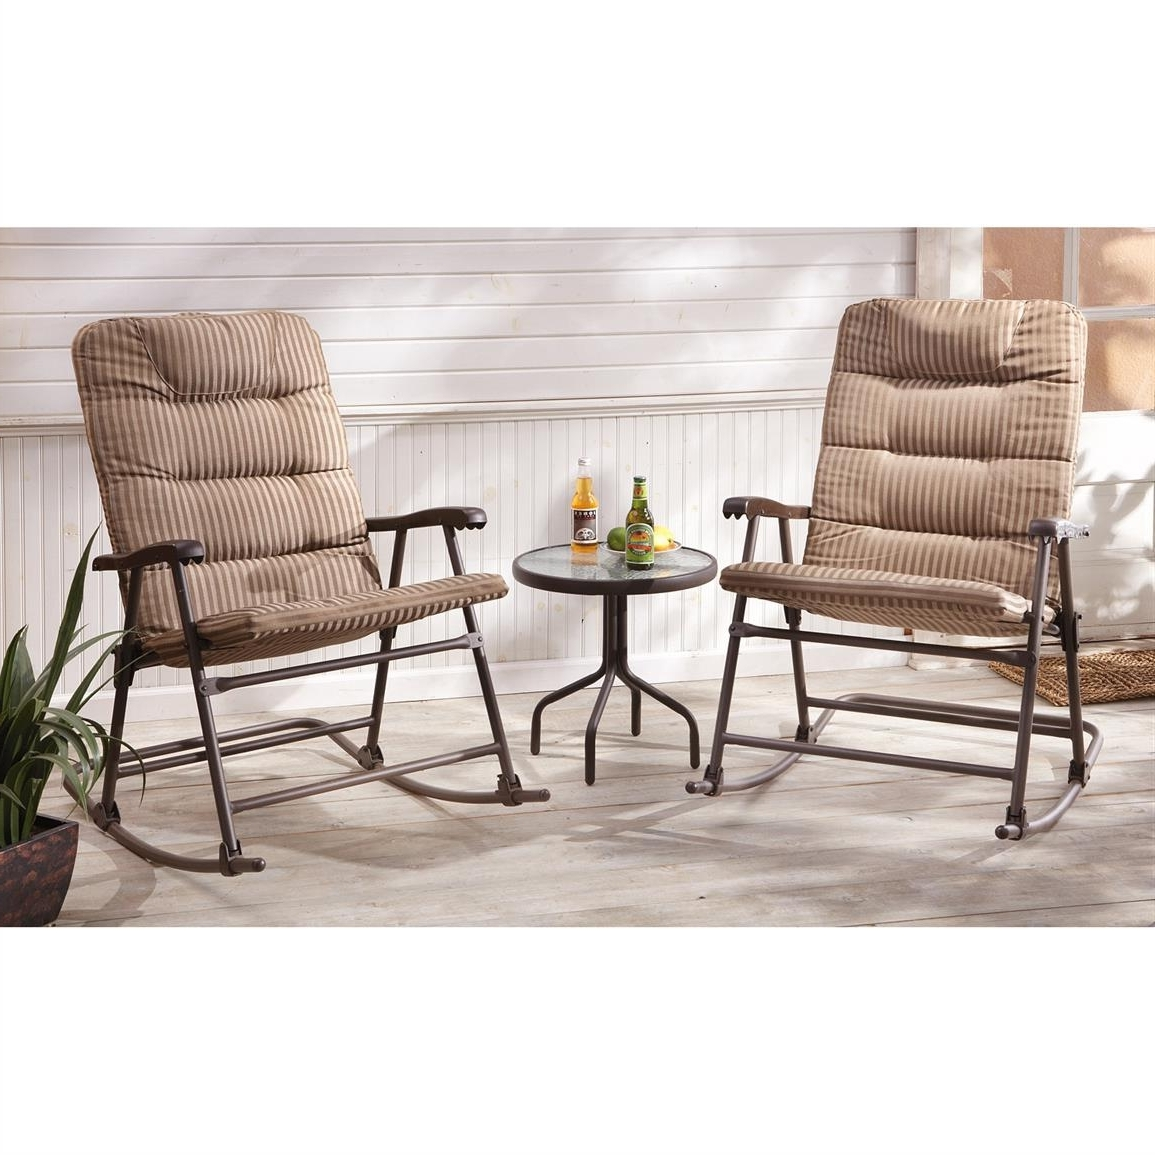 Most Popular Castlecreek Padded Outdoor Rocking Chair Set Piece Setup Patio Inside Patio Rocking Chairs Sets (View 14 of 15)